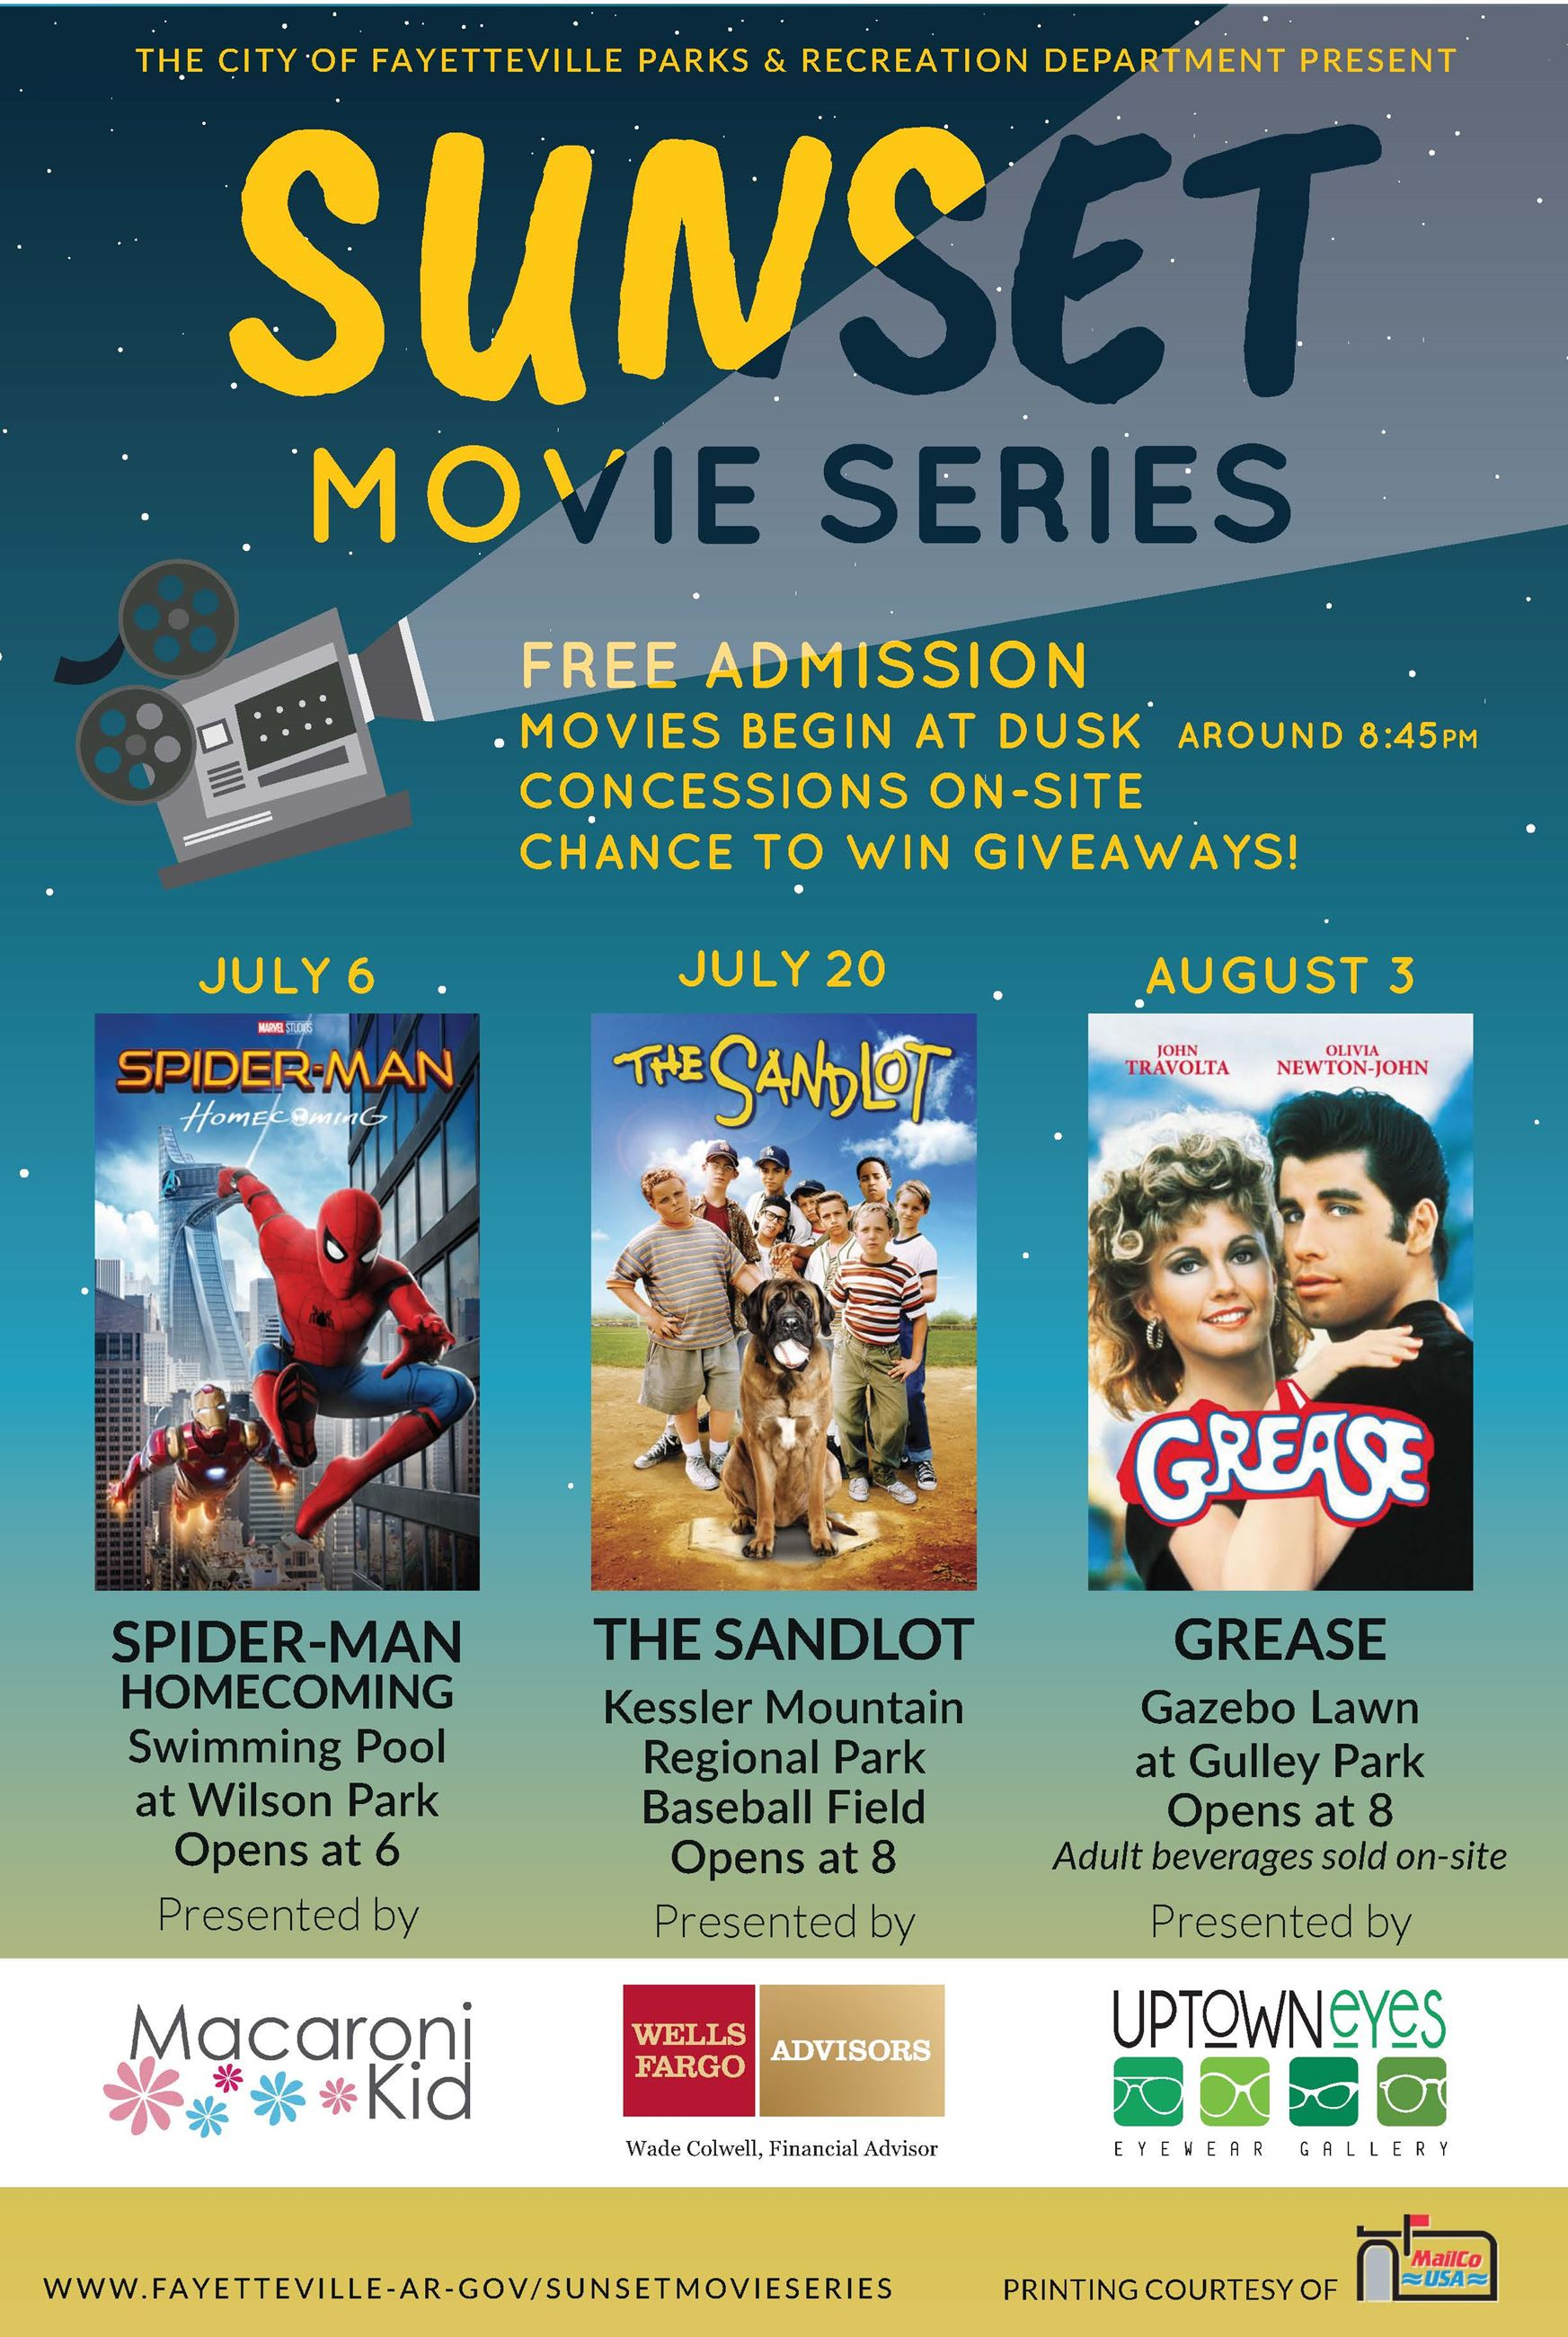 SunsetMovieSeries flyer - updated - Copy